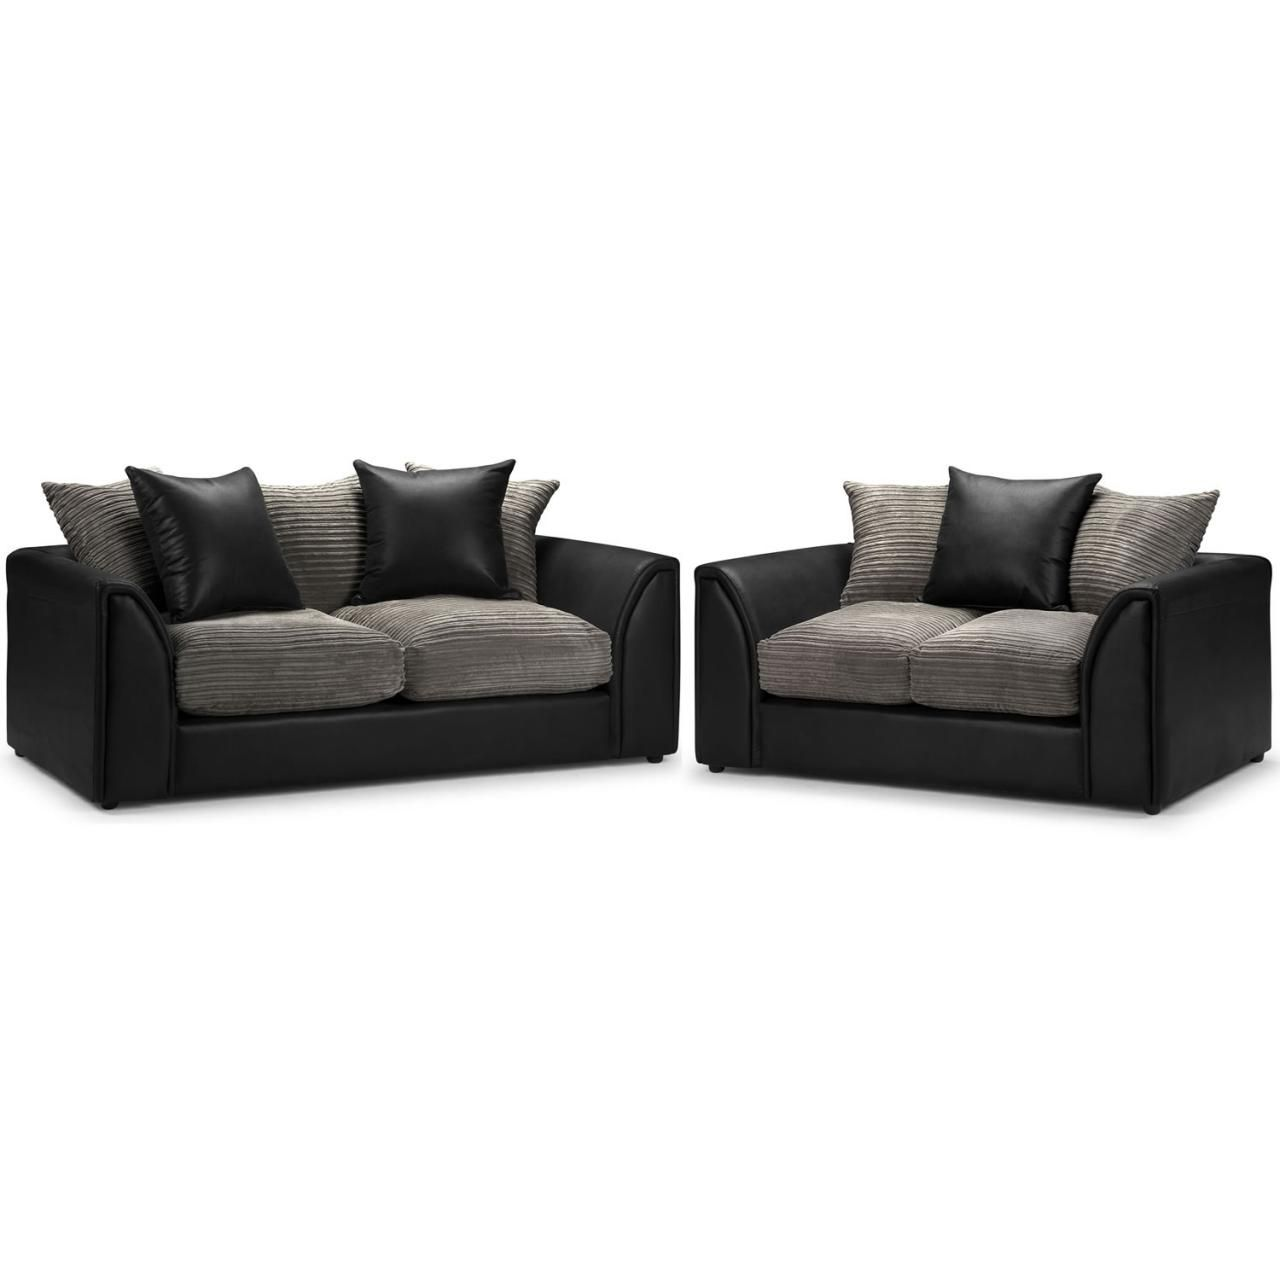 This Byron Three Seater And Two Sofa Set Is Also In The